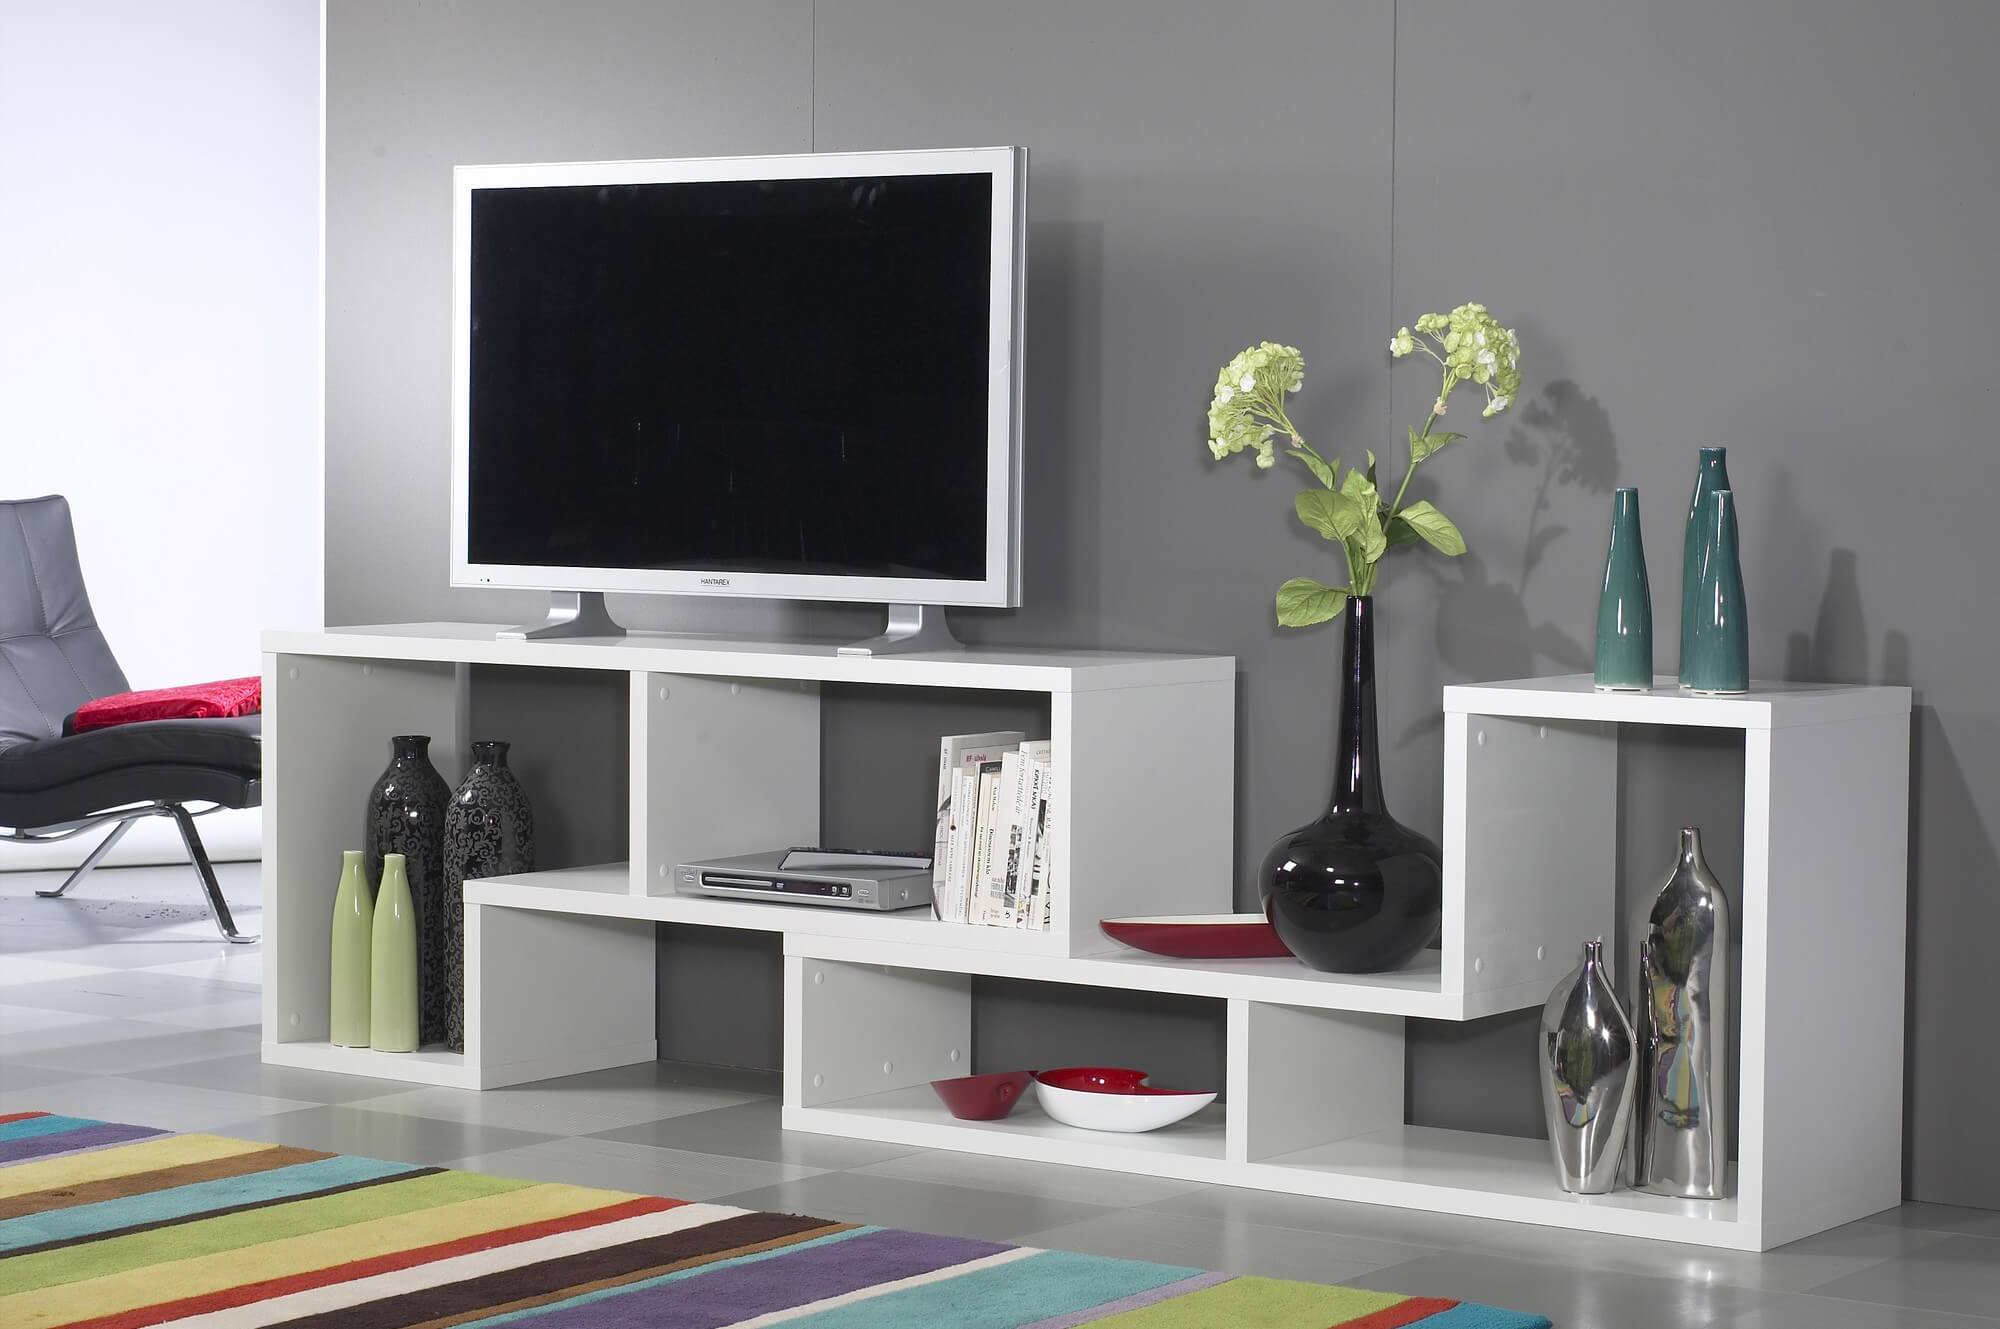 This is a horizontally oriented modern 6-cube shelving unit that as you can see is ideally suited as an entertainment stand offering additional storage sections for books, CDs, etc.